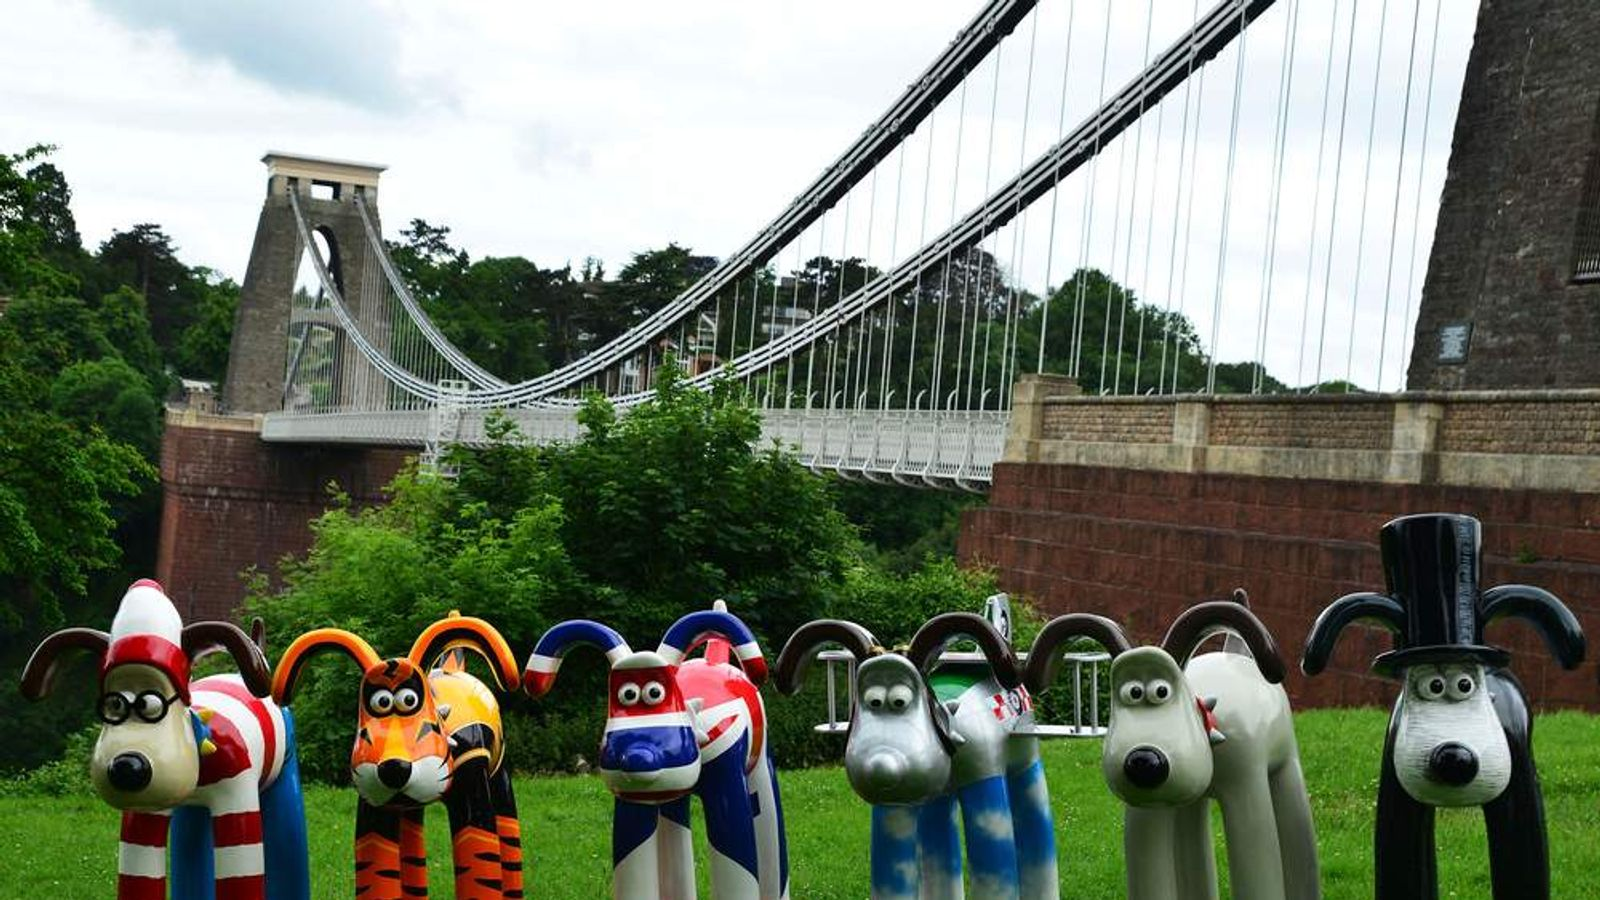 9 painted Gromit sculptures line up at Clifton Suspension Bridge.